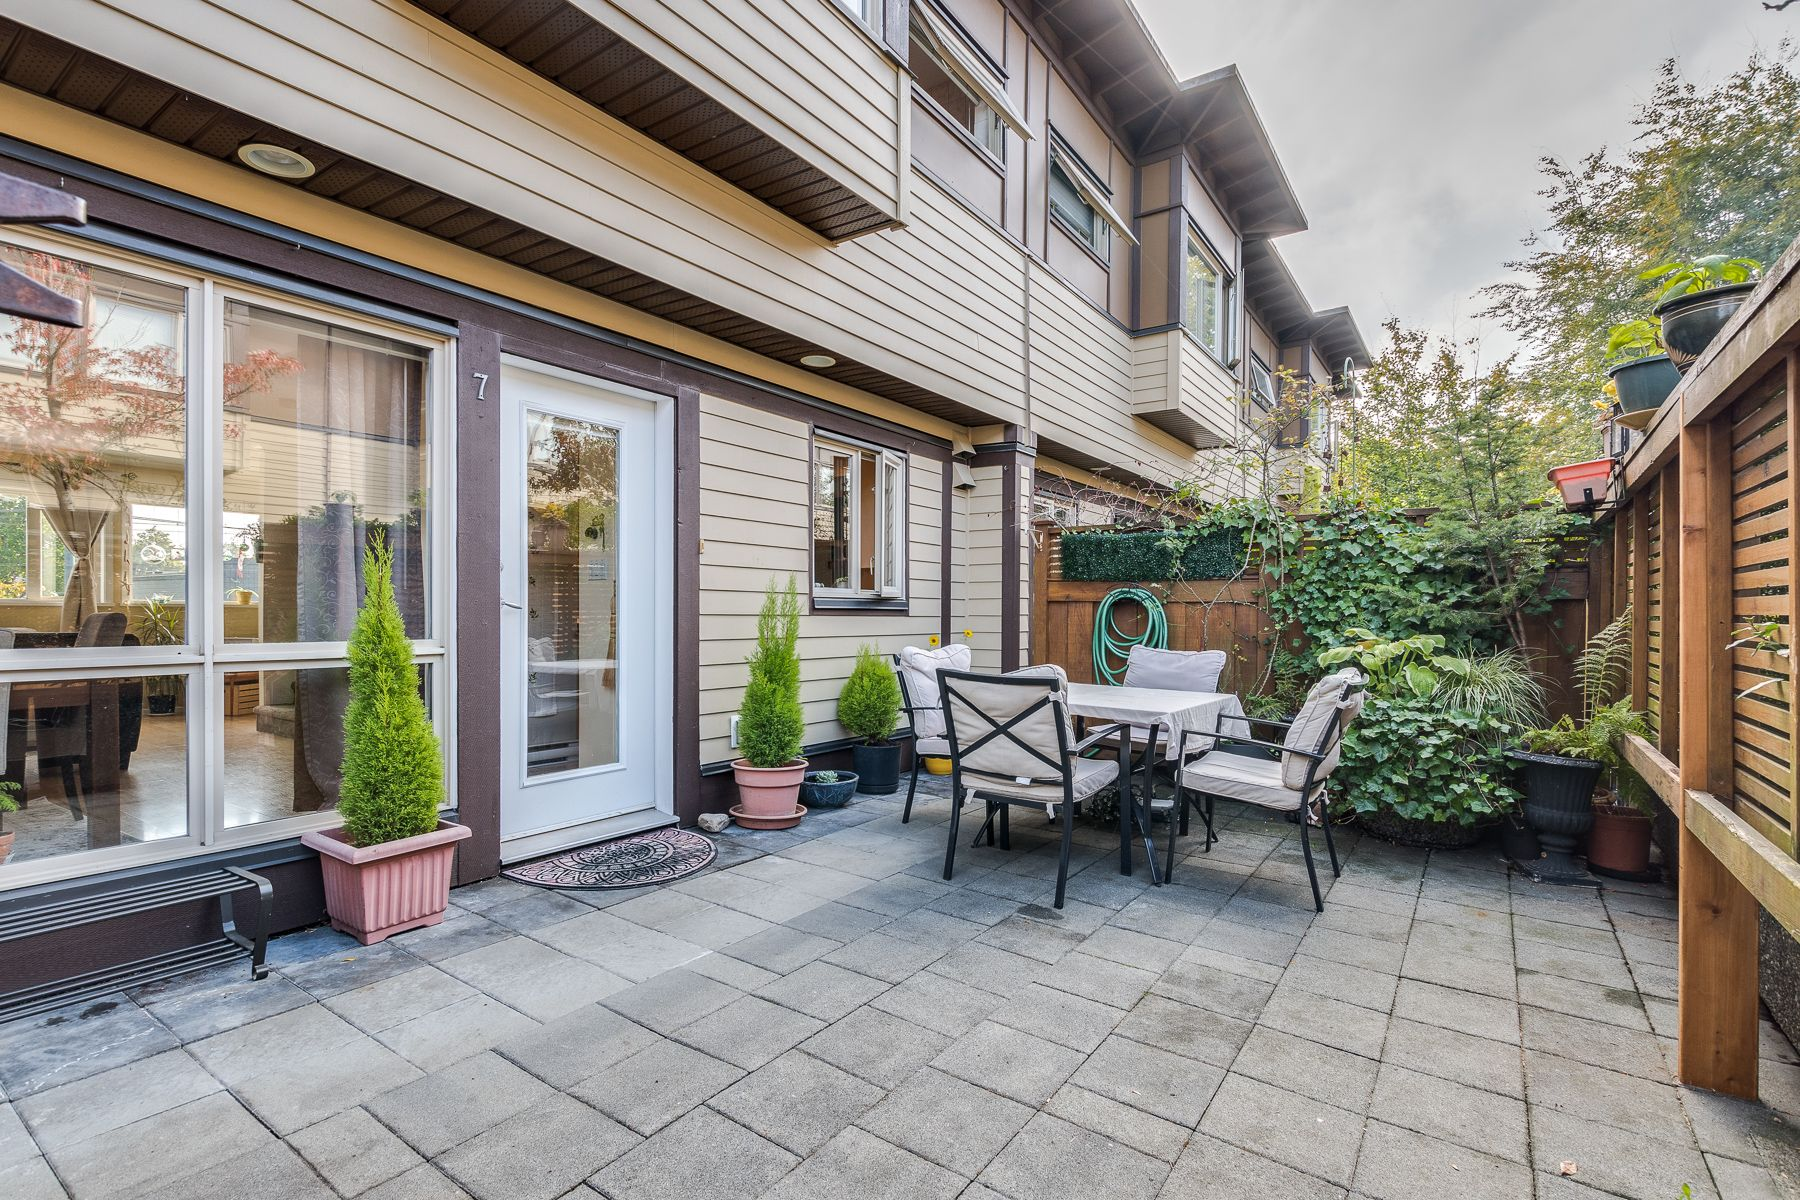 Photo 3: Photos: 7-2389 Charles St in Vancouver: Grandview Woodland Townhouse for sale (Vancouver East)